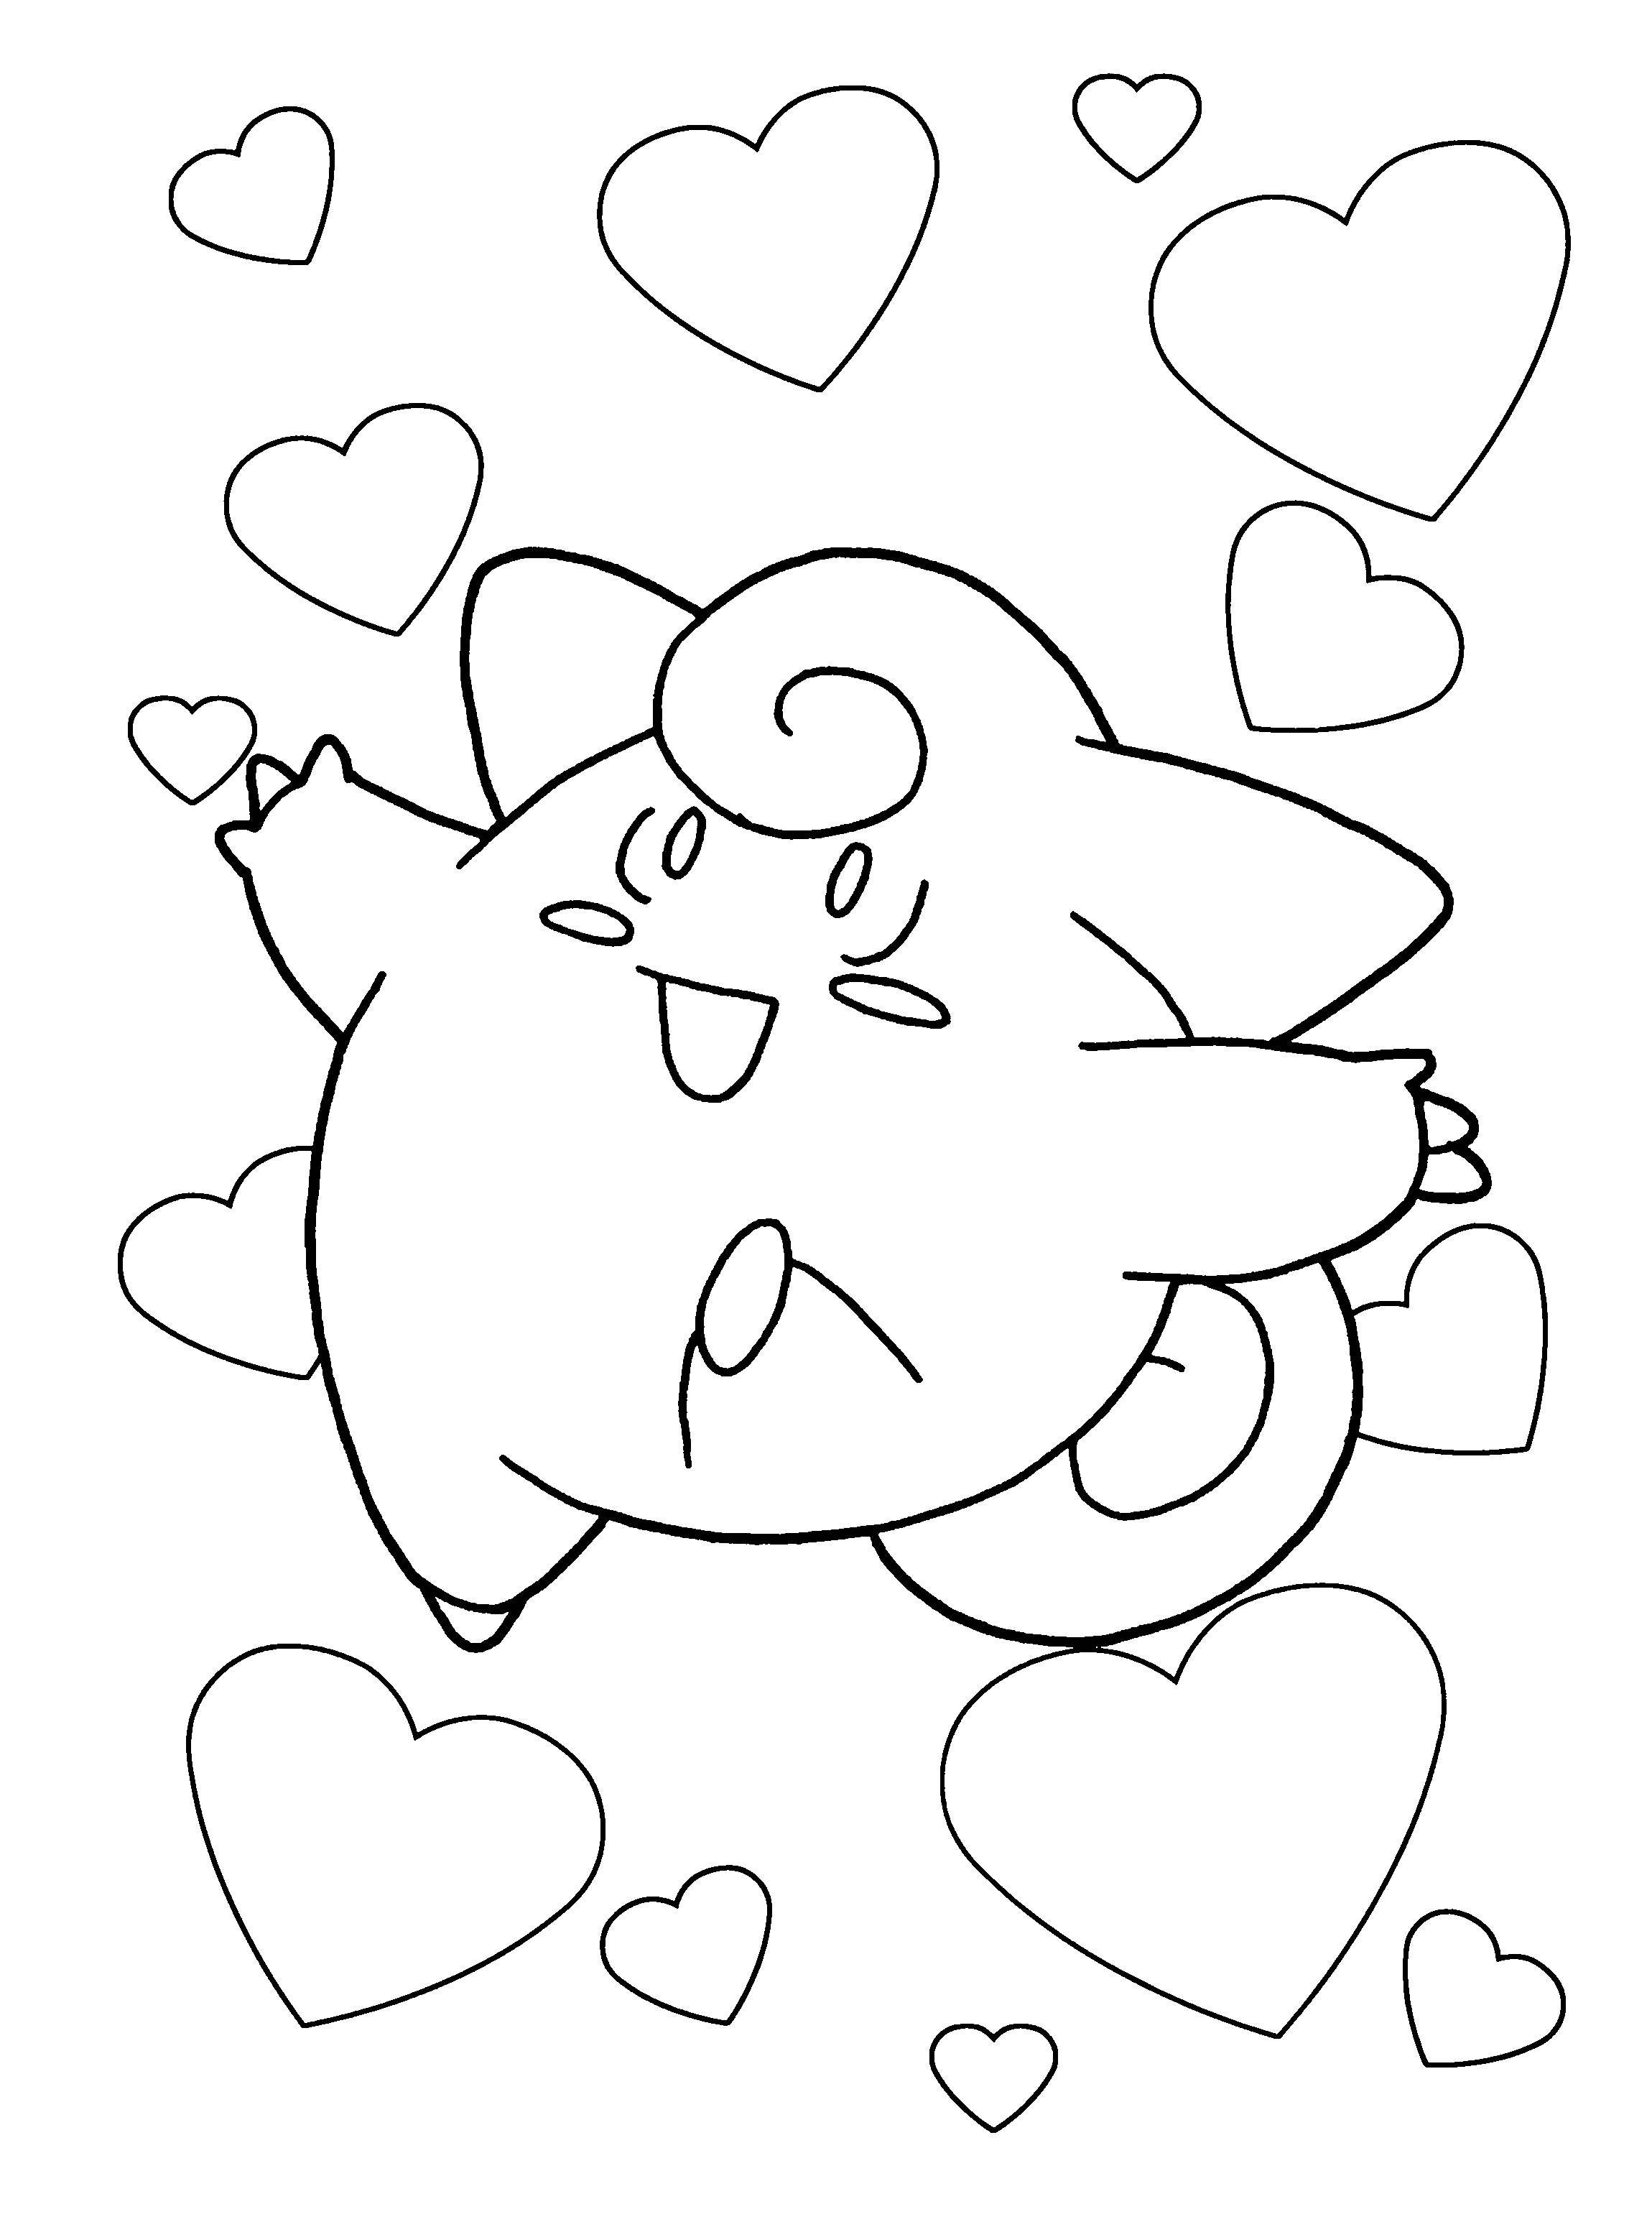 pokemon coloring pages to print pokemon coloring pages squid army coloring to print pages pokemon